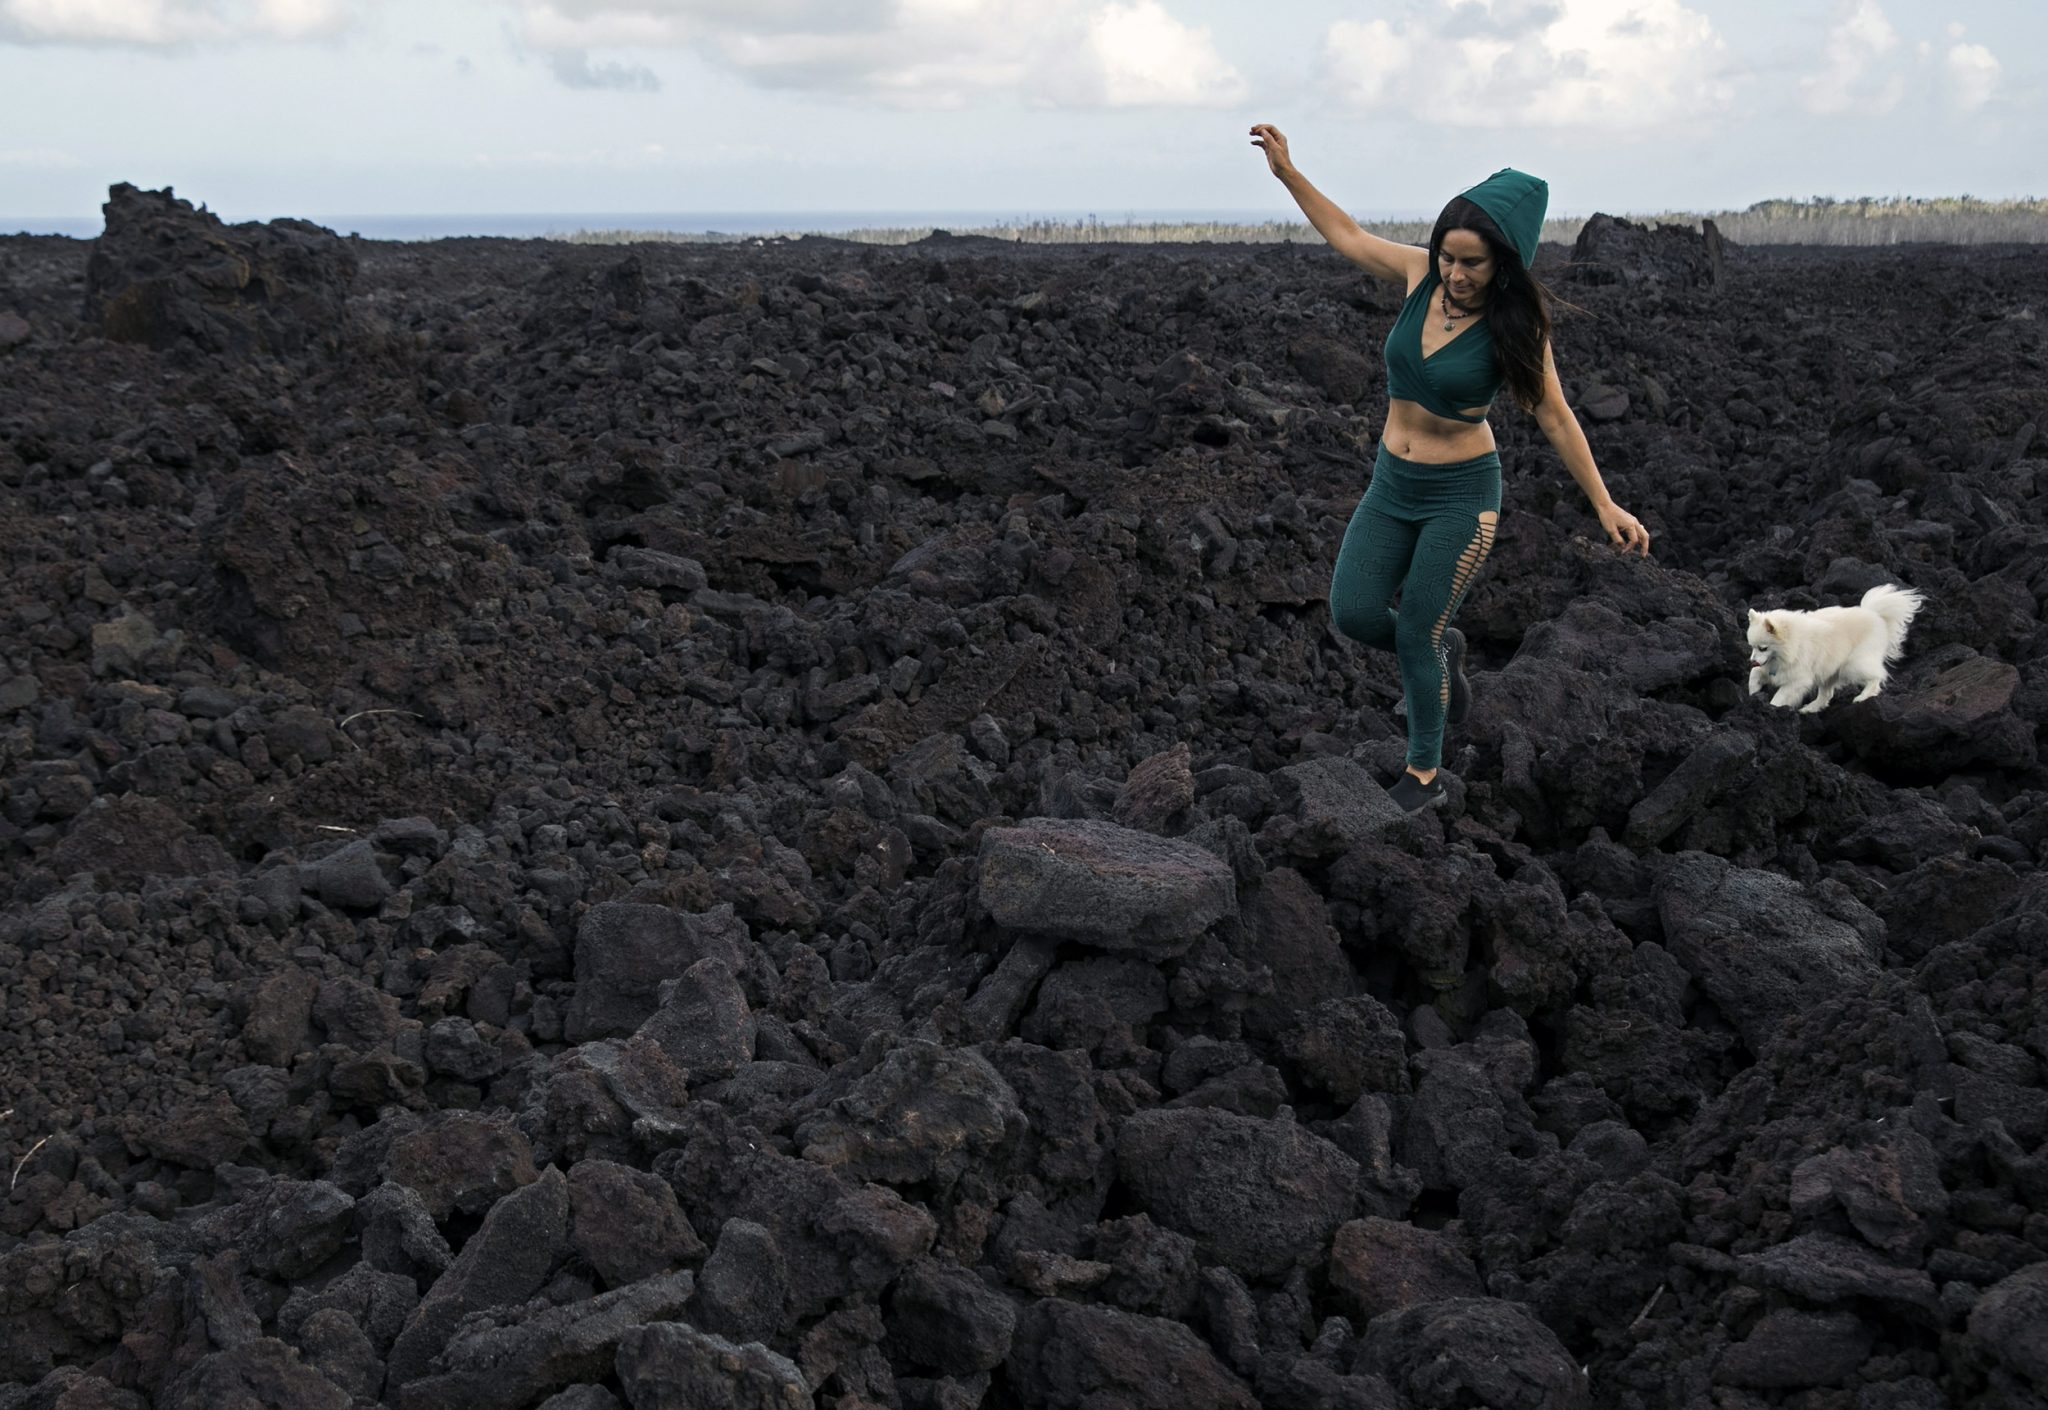 Hardships from Hawaii volcano stretch on 1 year later